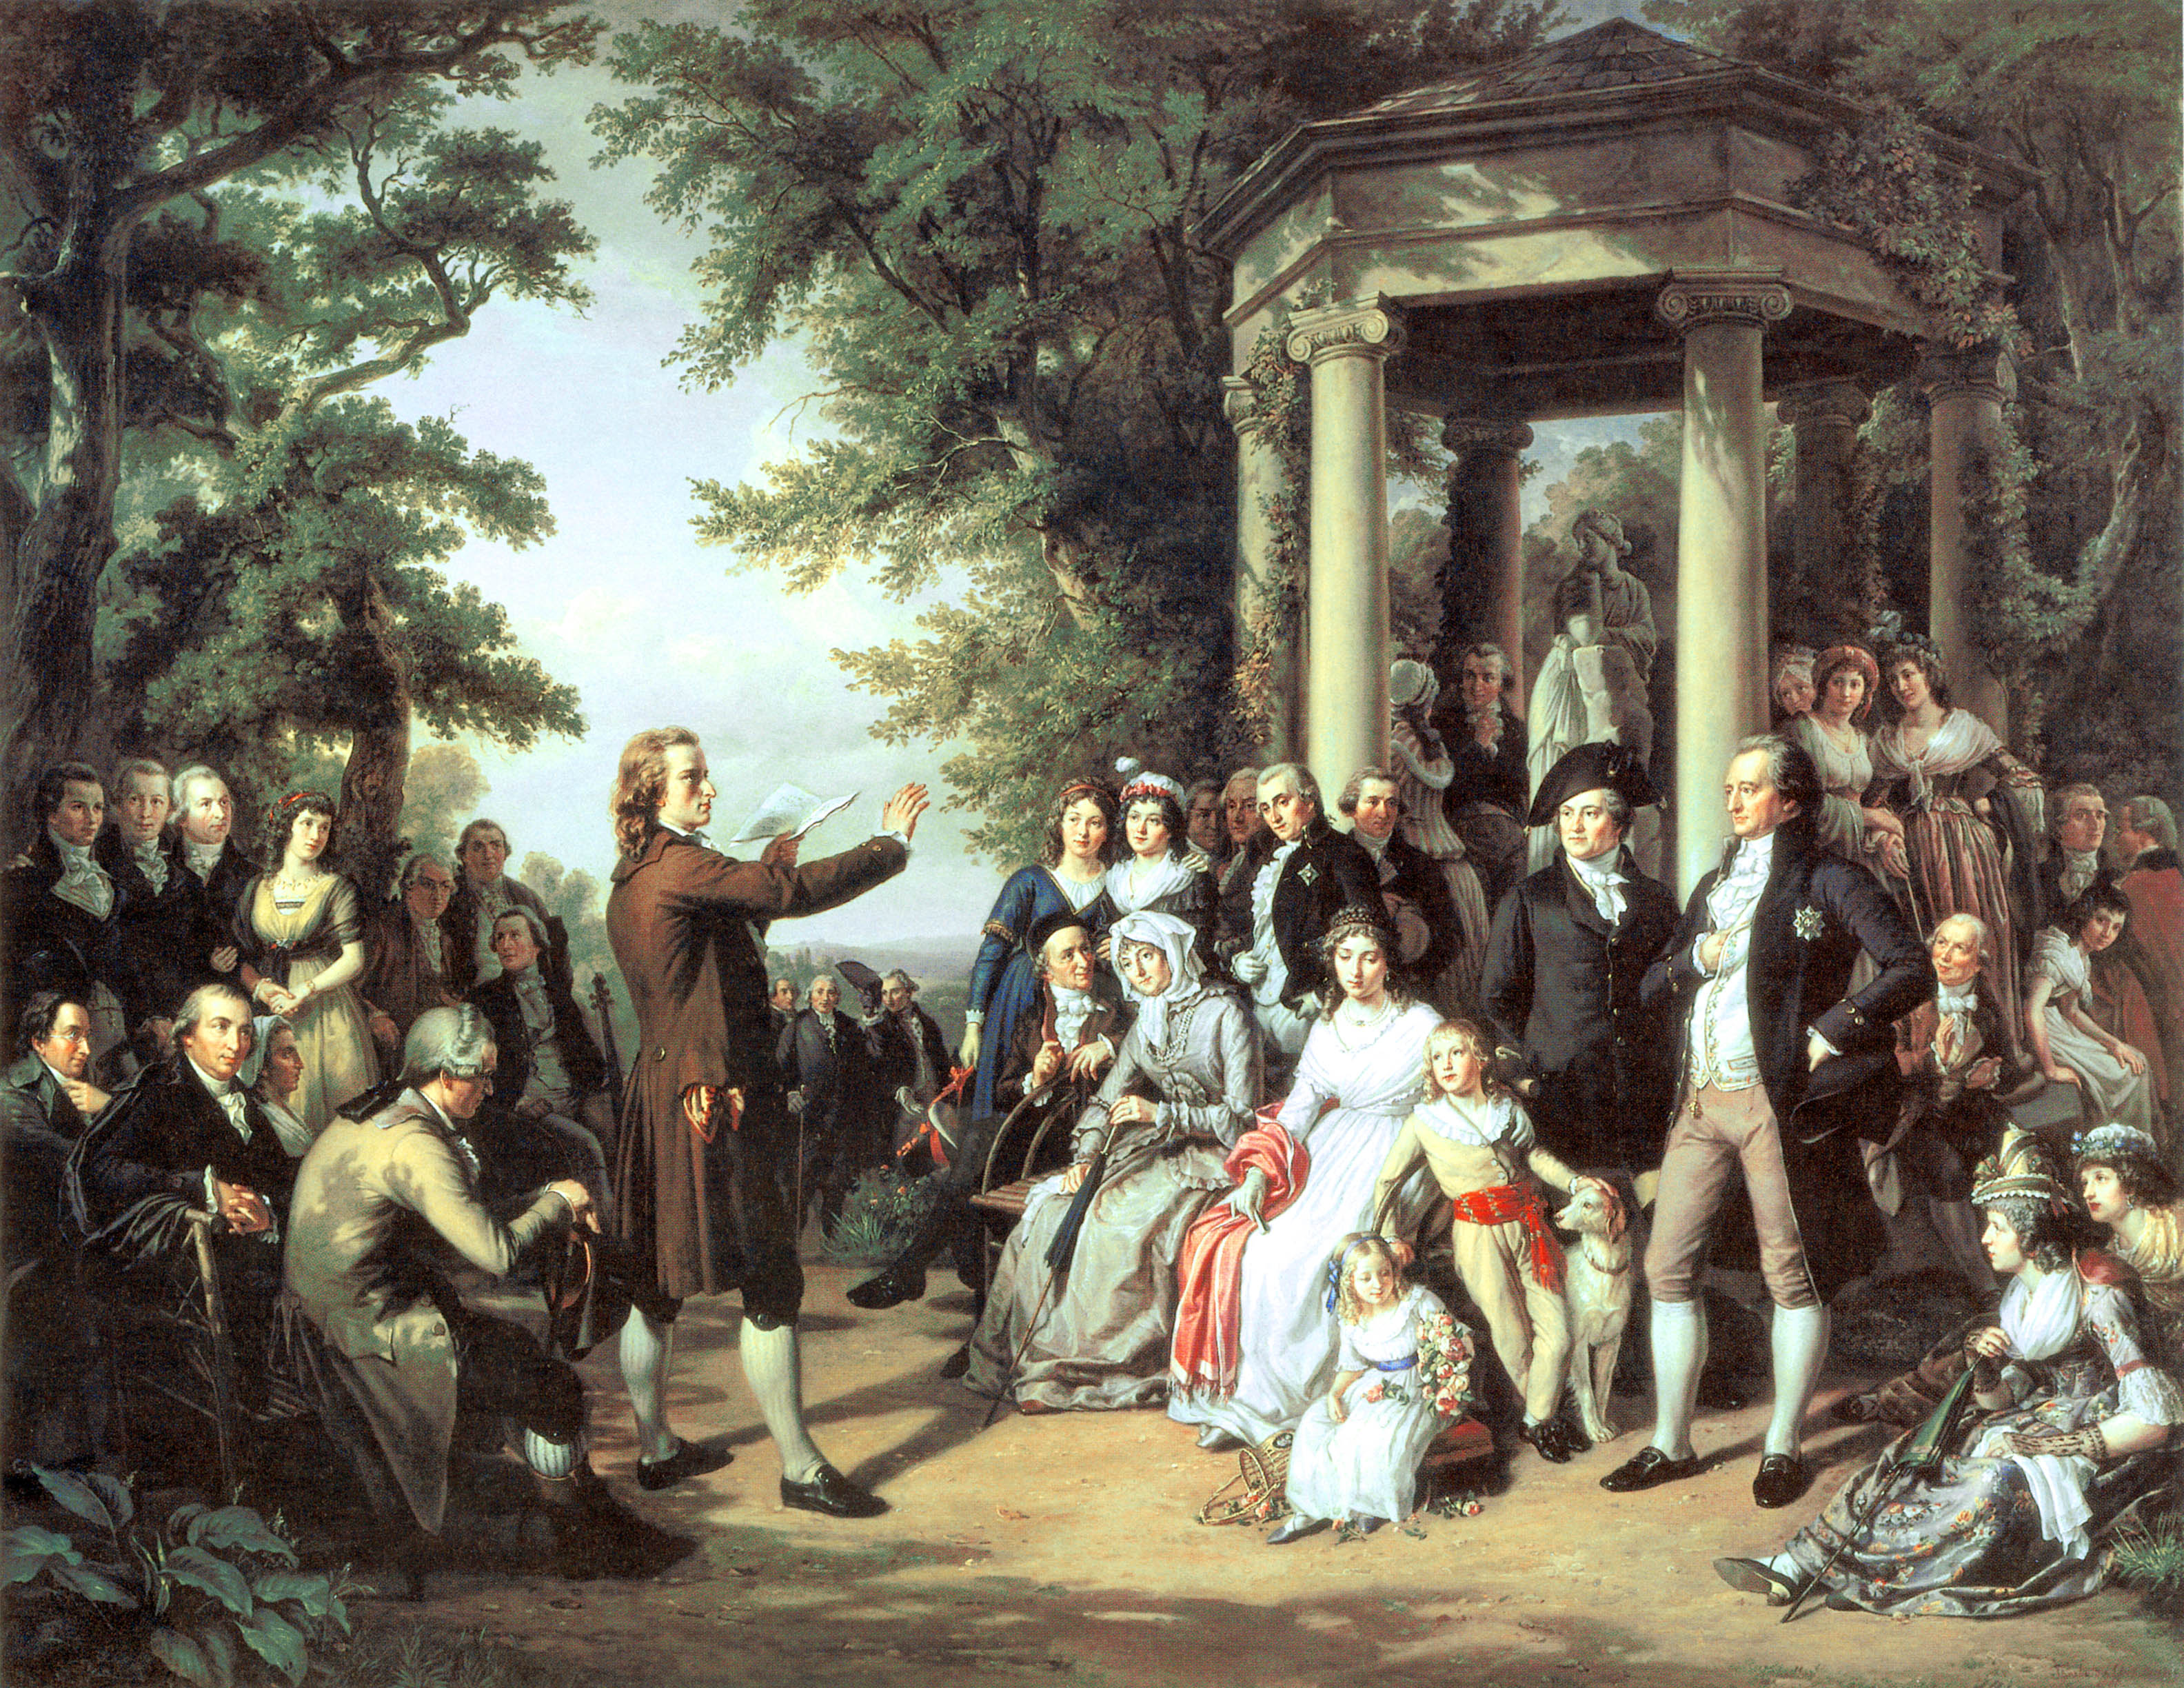 an overview of the 18th century france and the enlightenment period by different artists